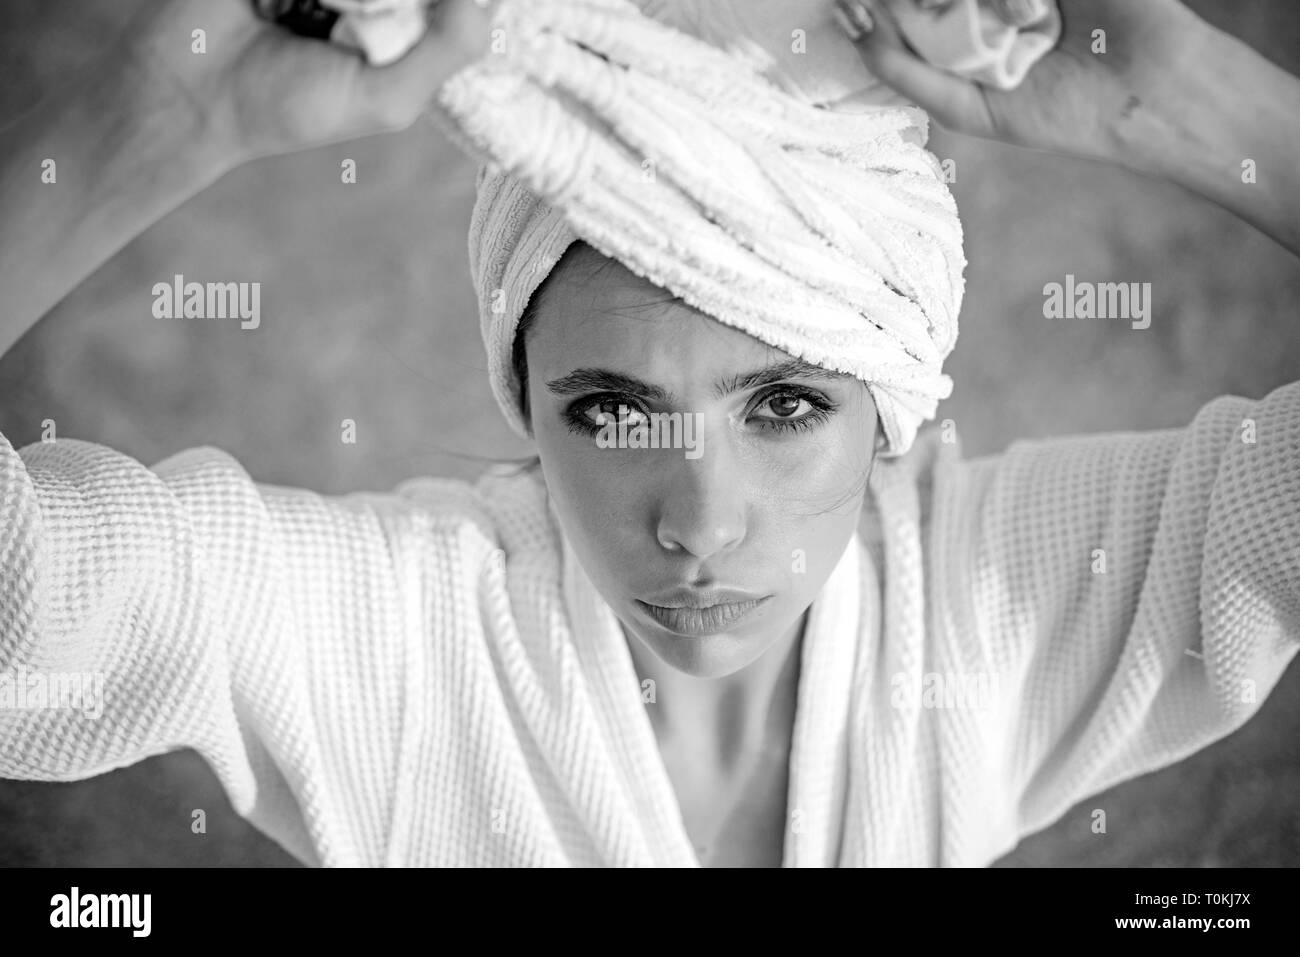 Hair care. Skincare model after spa bath. Skincare at spa. Beauty salon. Beauty routine and hygiene care. Bathing habits. Young woman in bathing gown - Stock Image